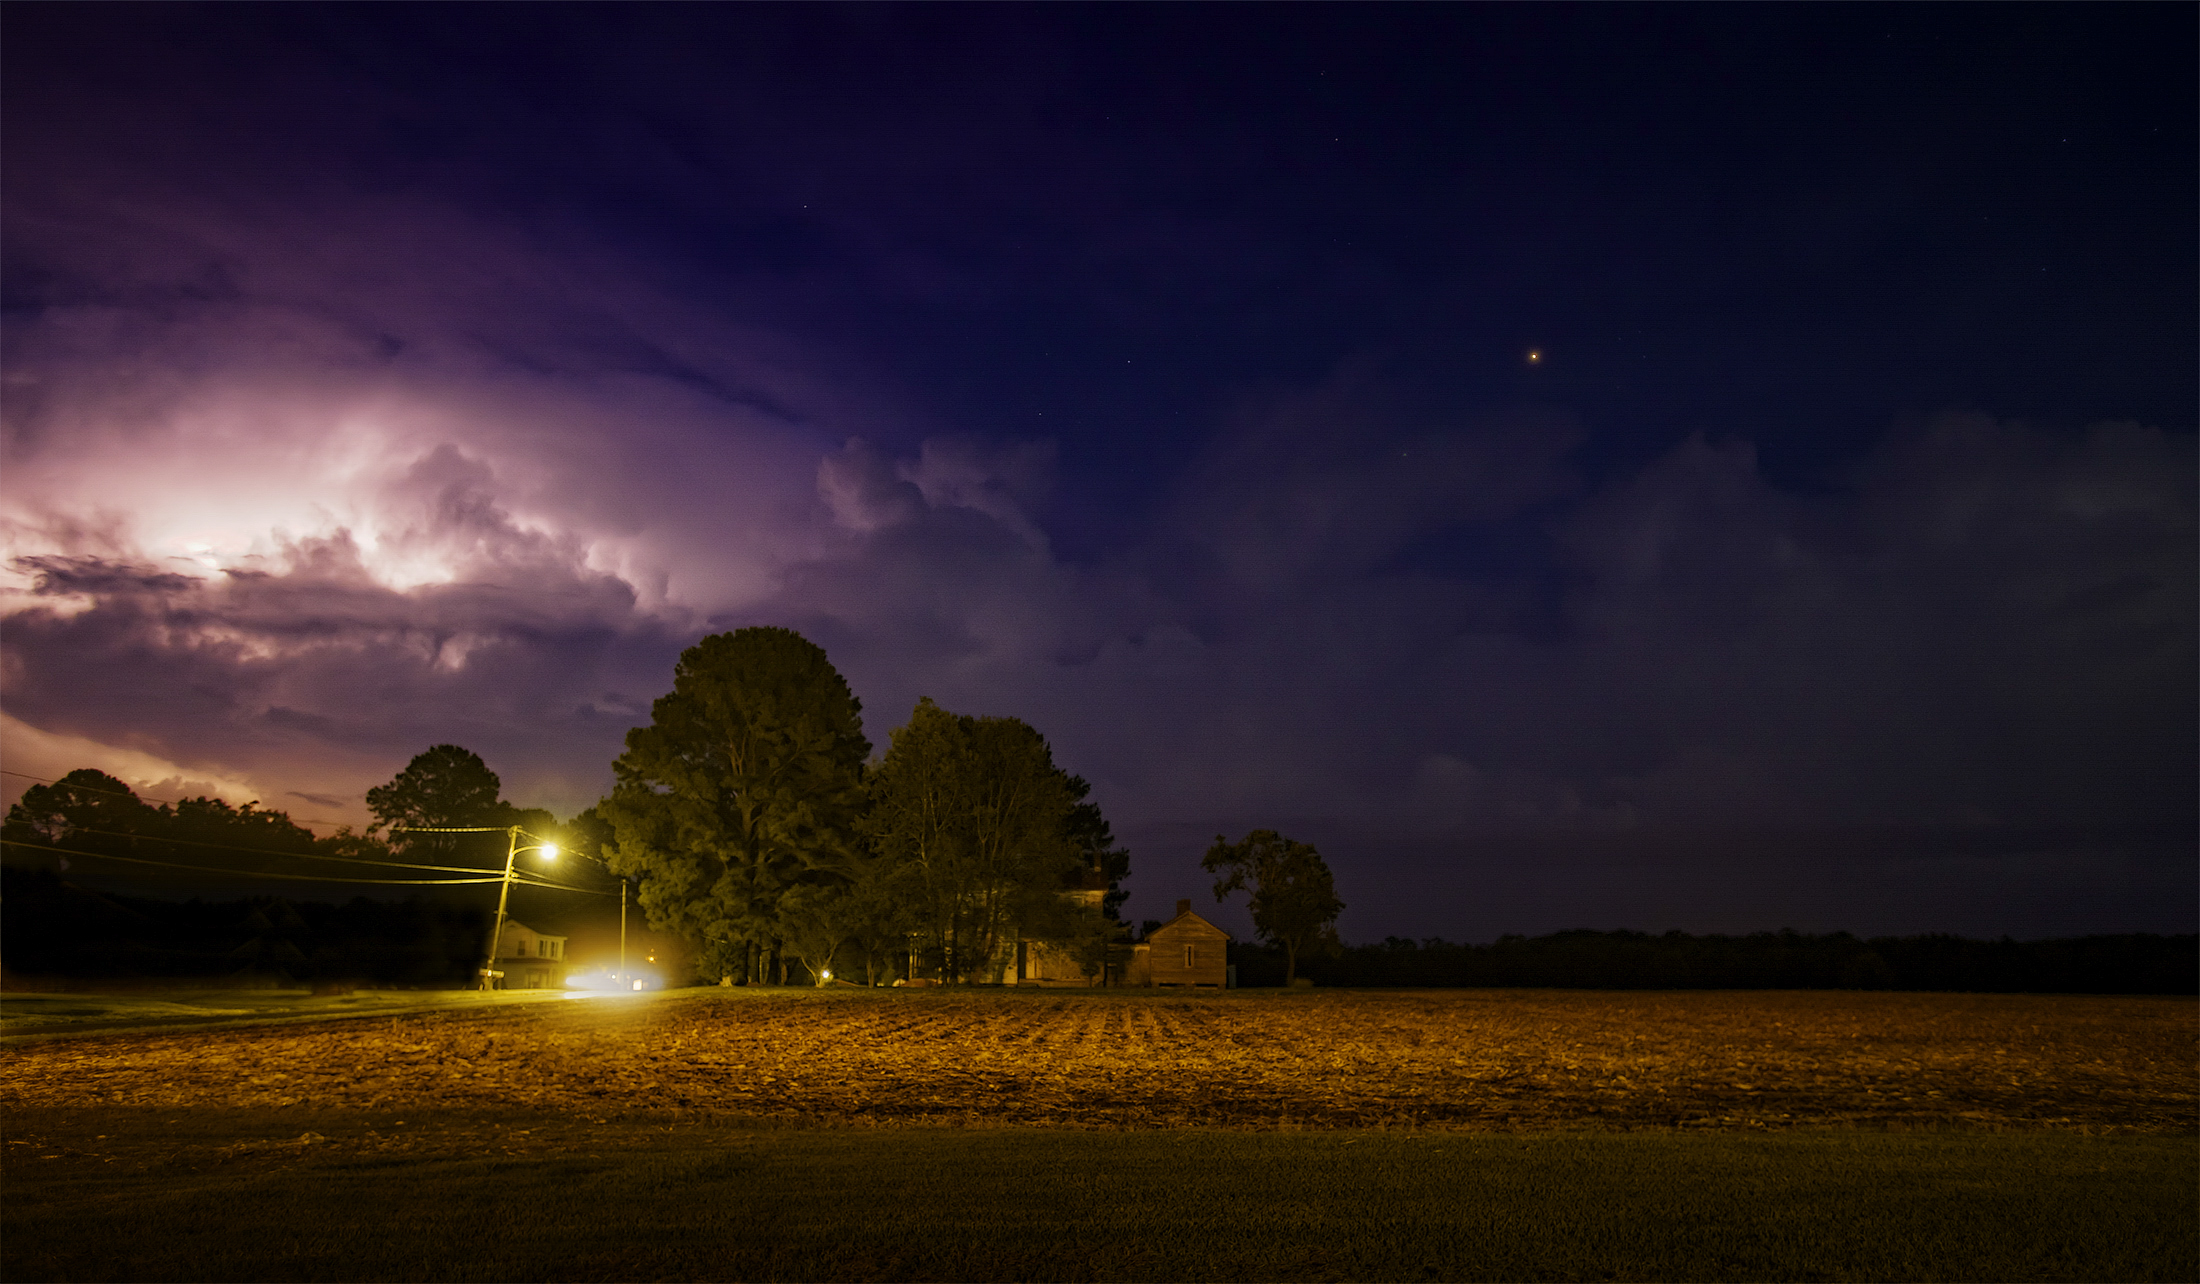 Summer storm on Route 13, North Carolina on September 9th.